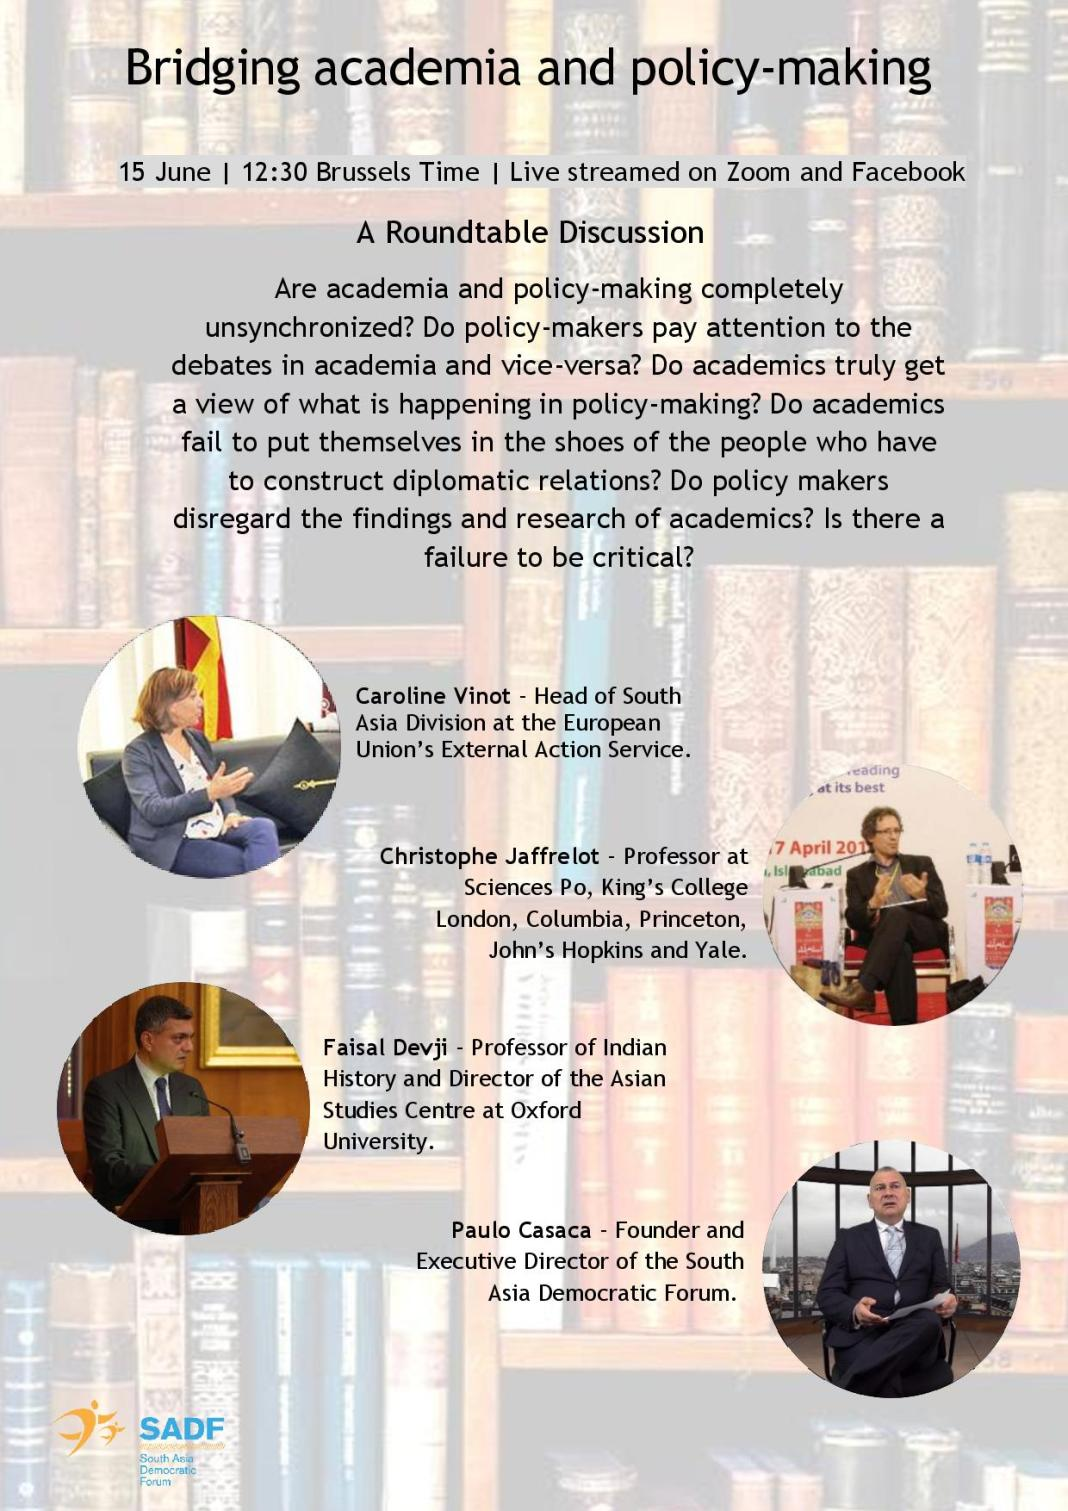 , Bridging academia and policy-making – A Roundtable Discussion with Caroline Vinot, Christophe Jaffrelot, Faisal Devji and Paulo Casaca